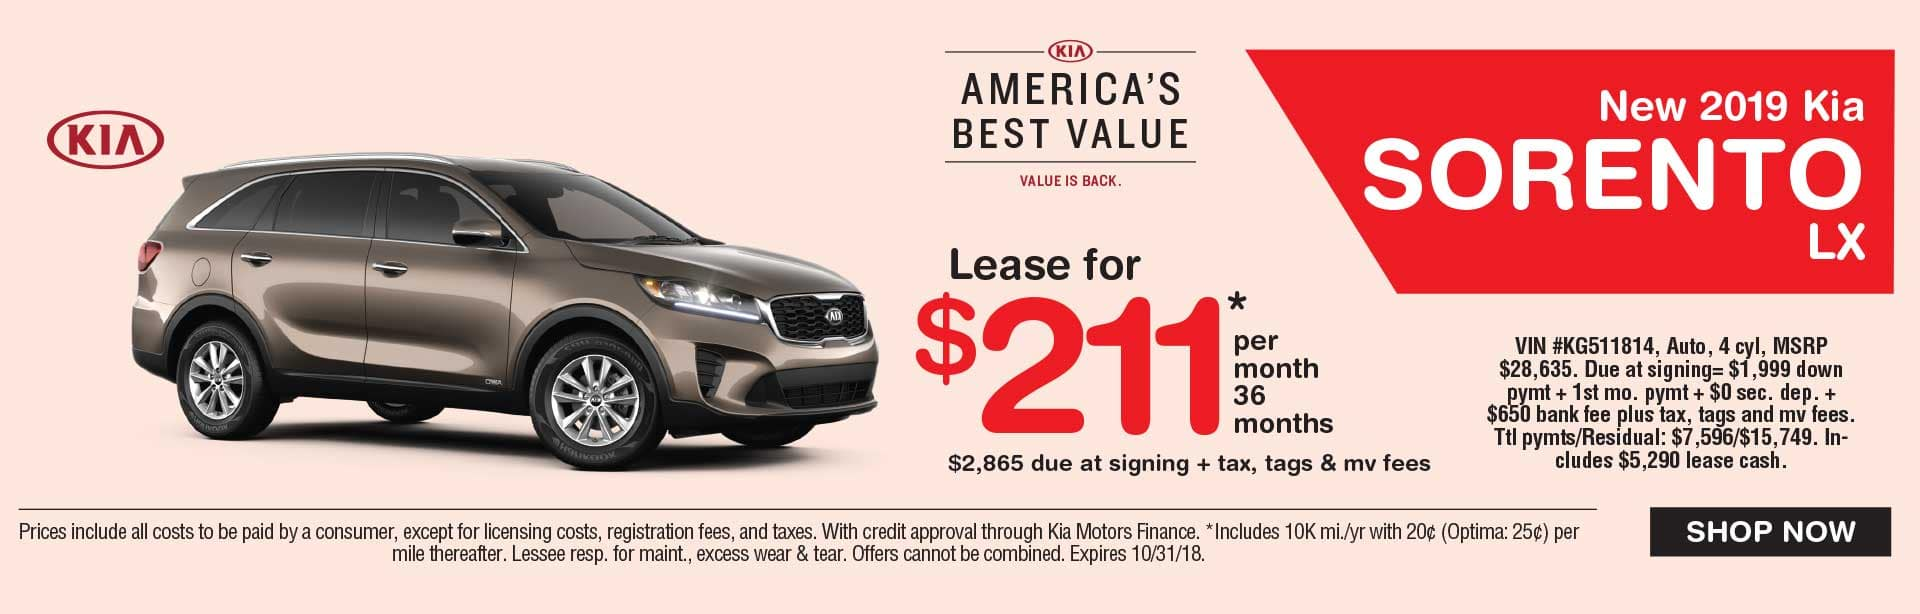 Awesome Kia Sorento Lease Global Kia